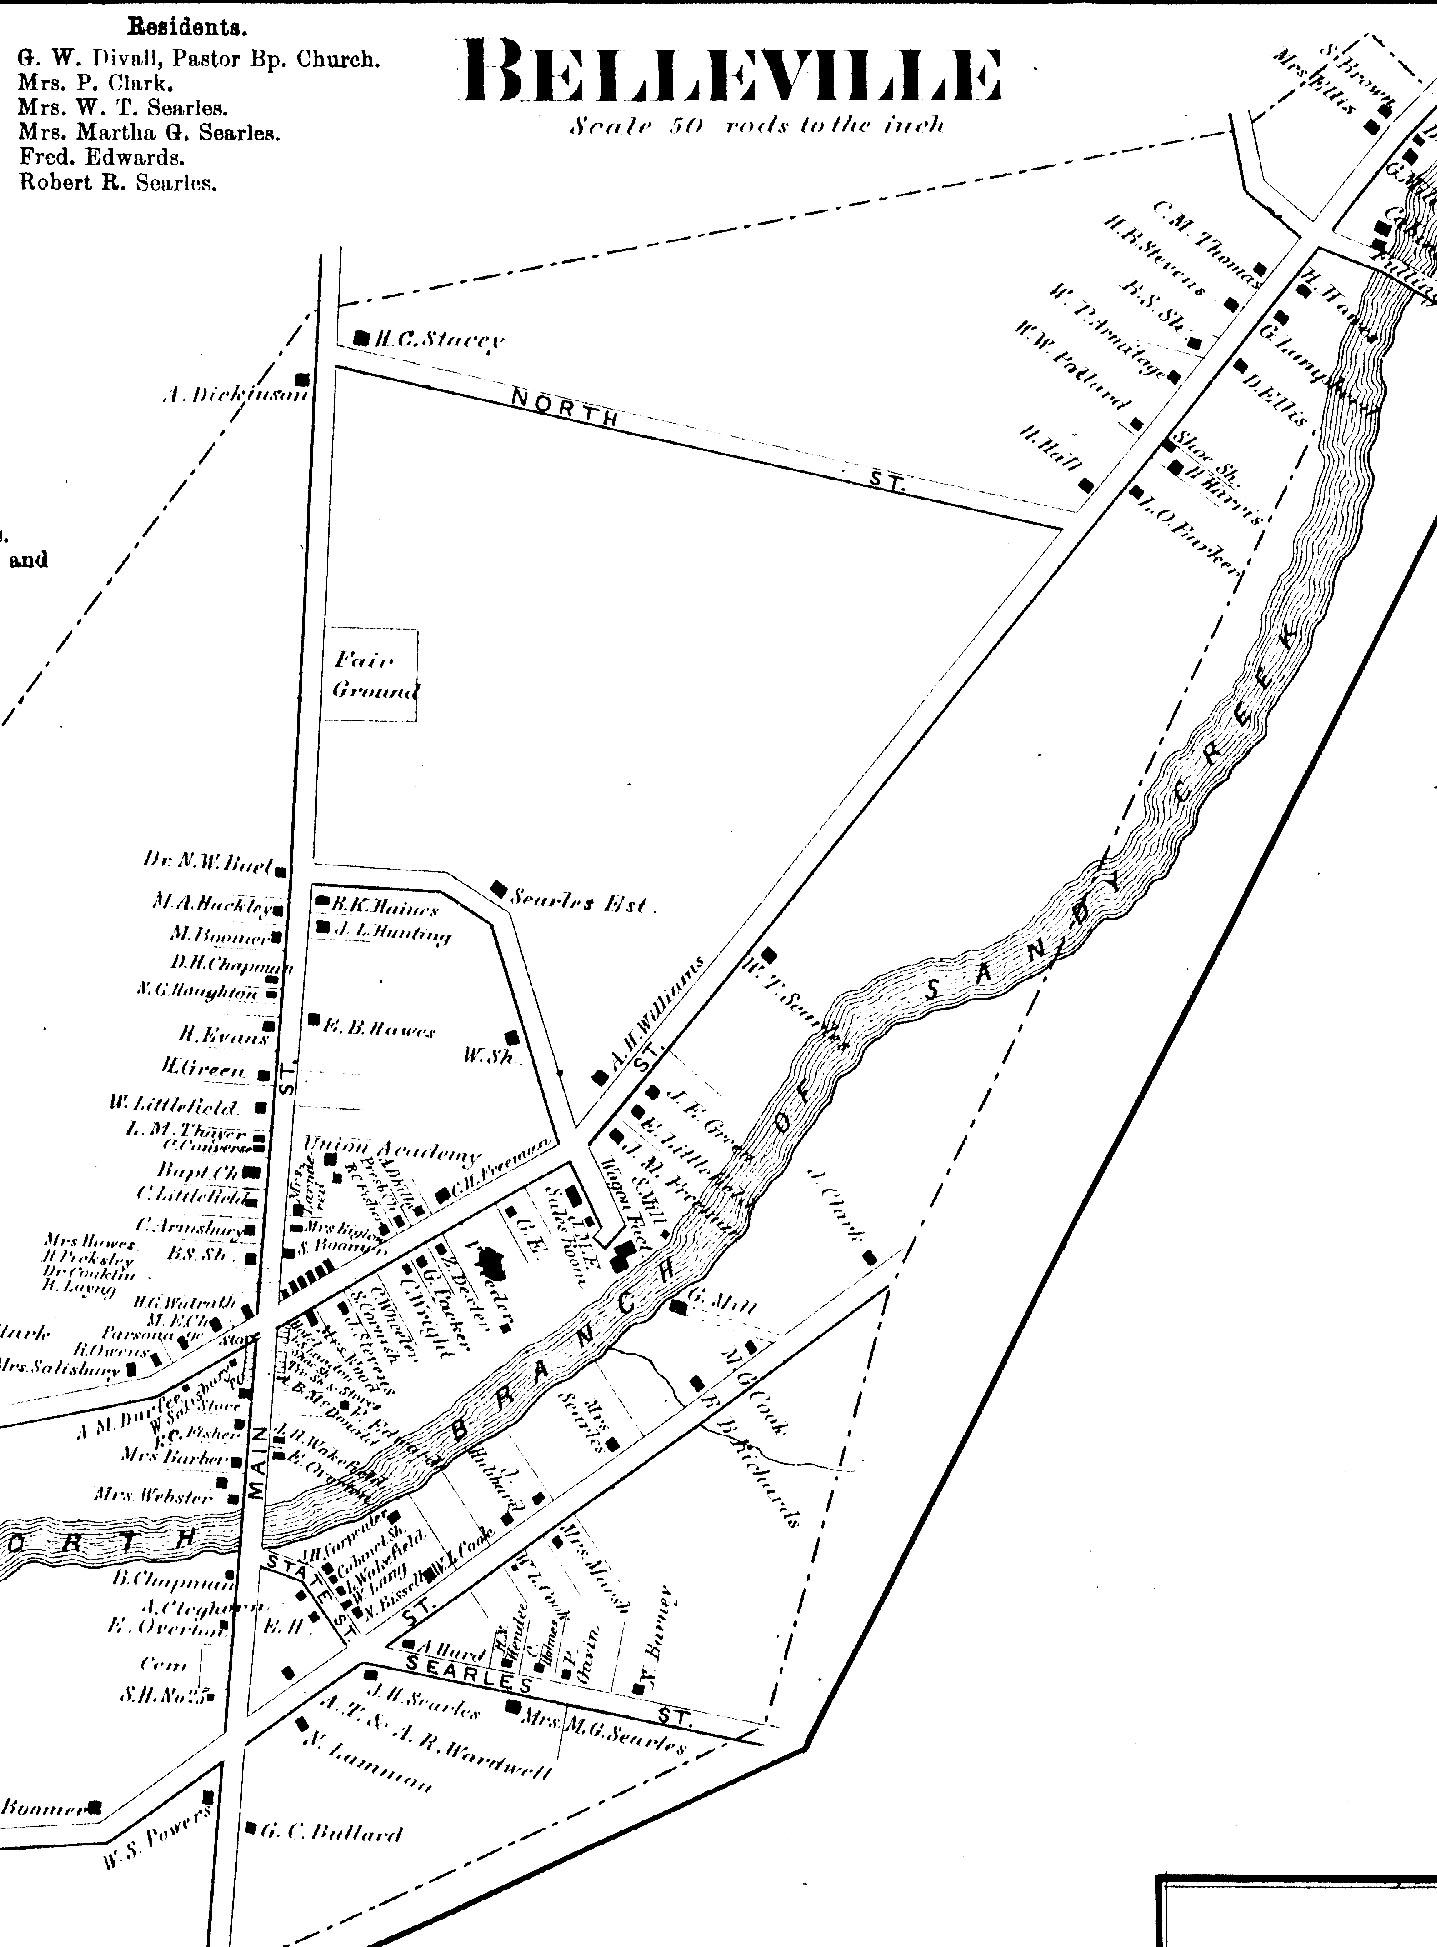 1864 map of Belleville